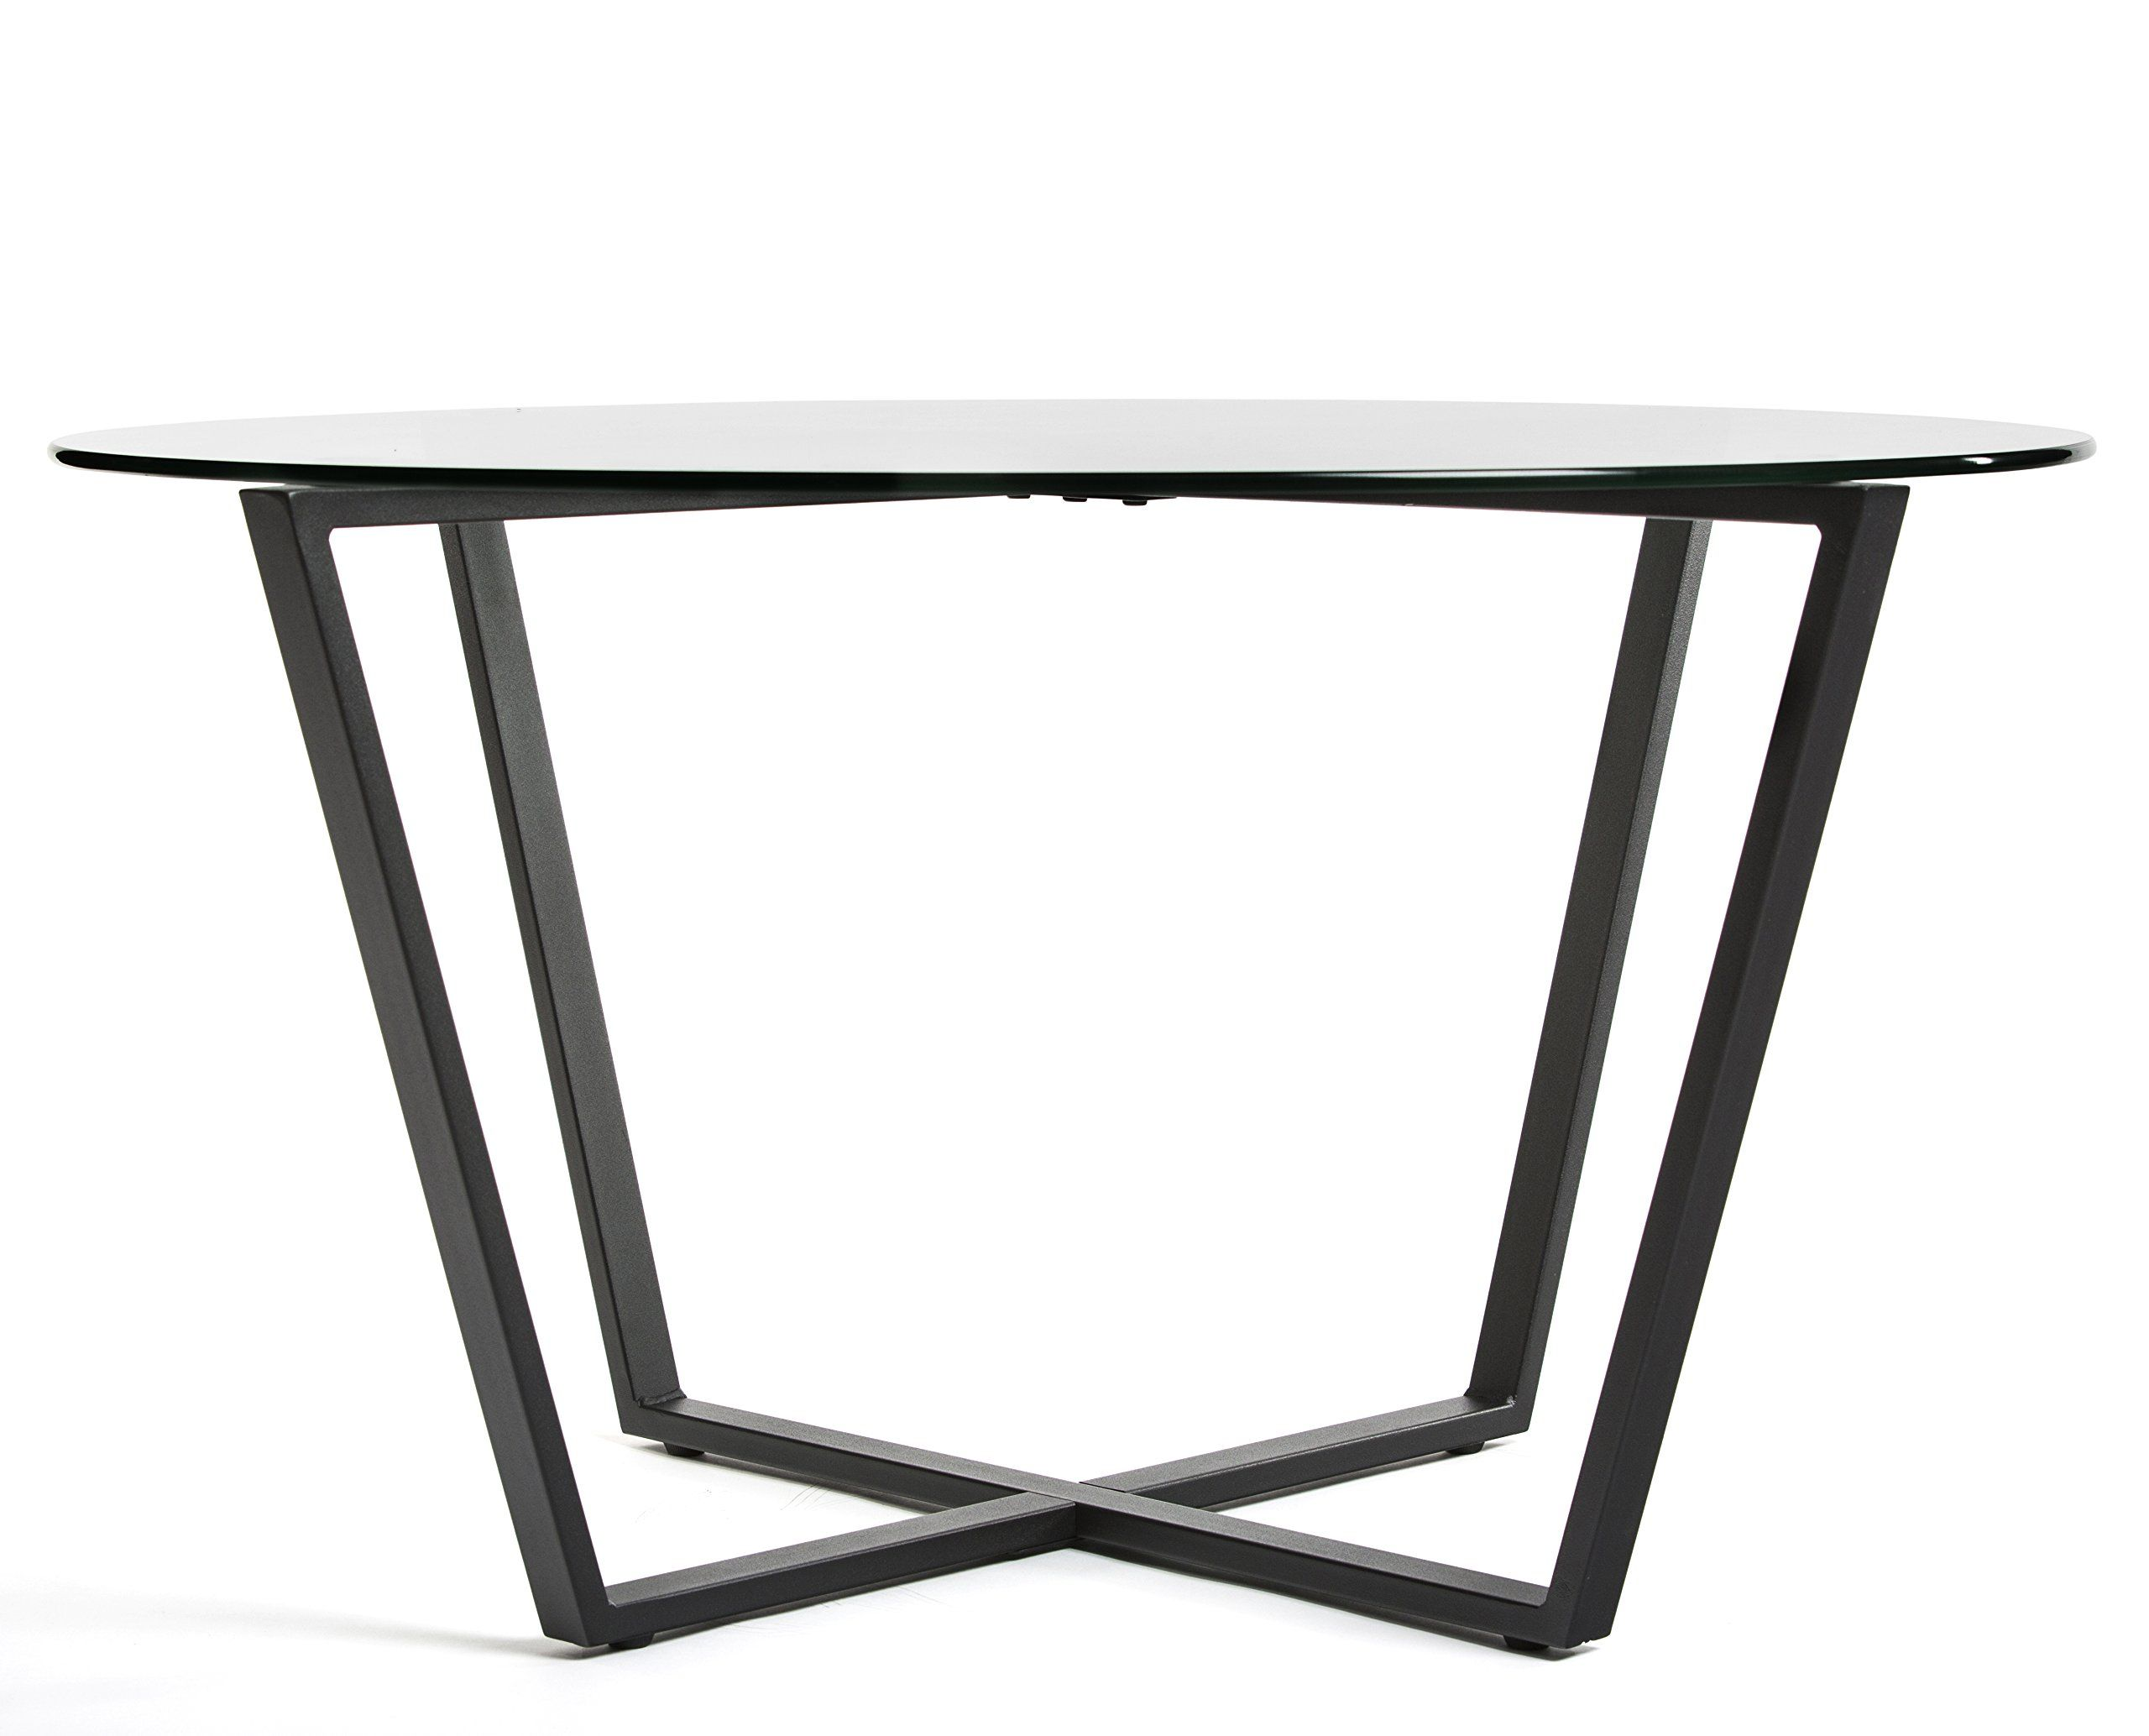 Mango Steam Metro Glass Coffee Table Clear Top Black Base Read More At The Image Link Round Coffee Table Modern Modern Coffee Tables Stylish Home Decor [ 2068 x 2560 Pixel ]